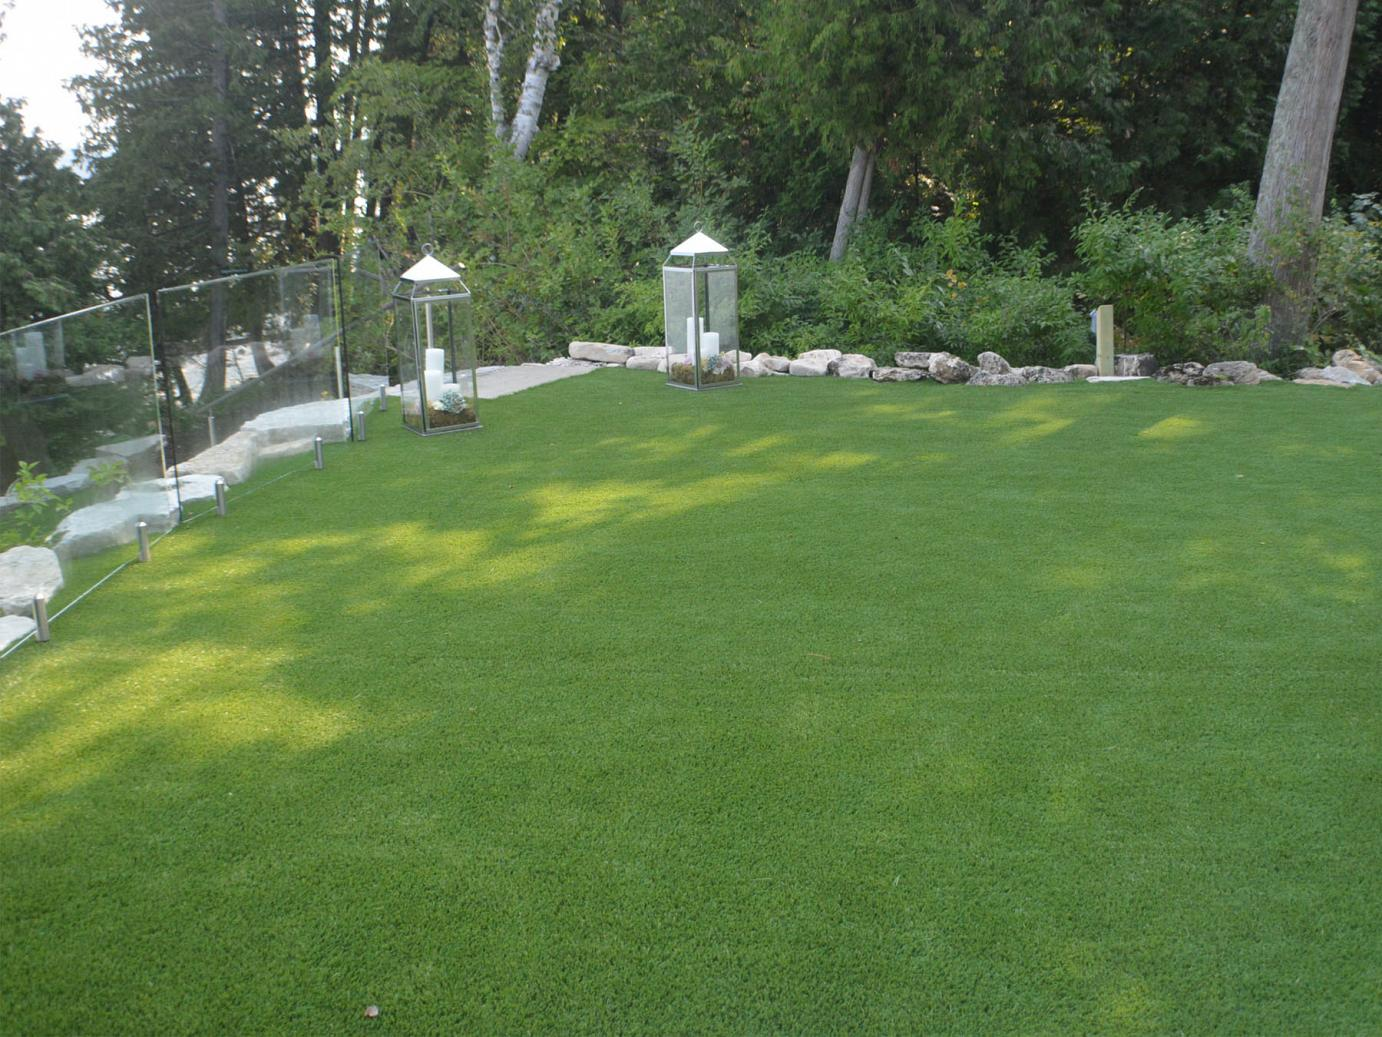 grass carpet campo bonito, arizona garden ideas, backyard garden ideas